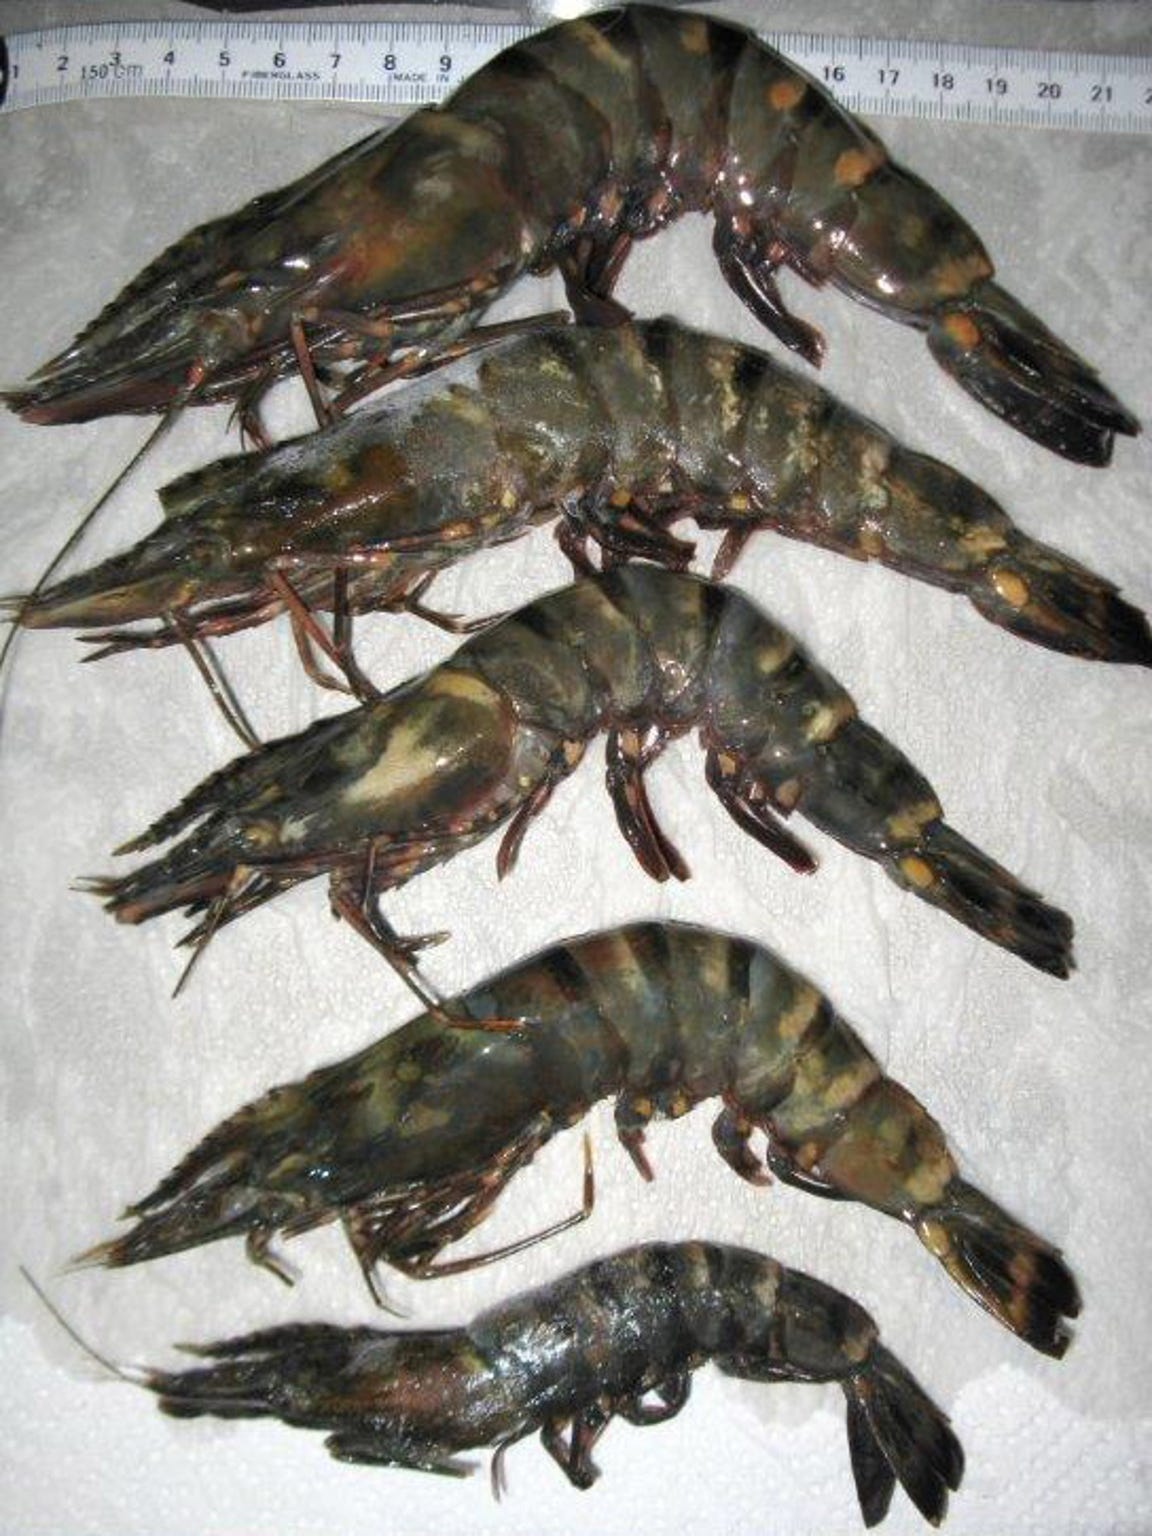 These tiger prawns were recently caught in Pensacola